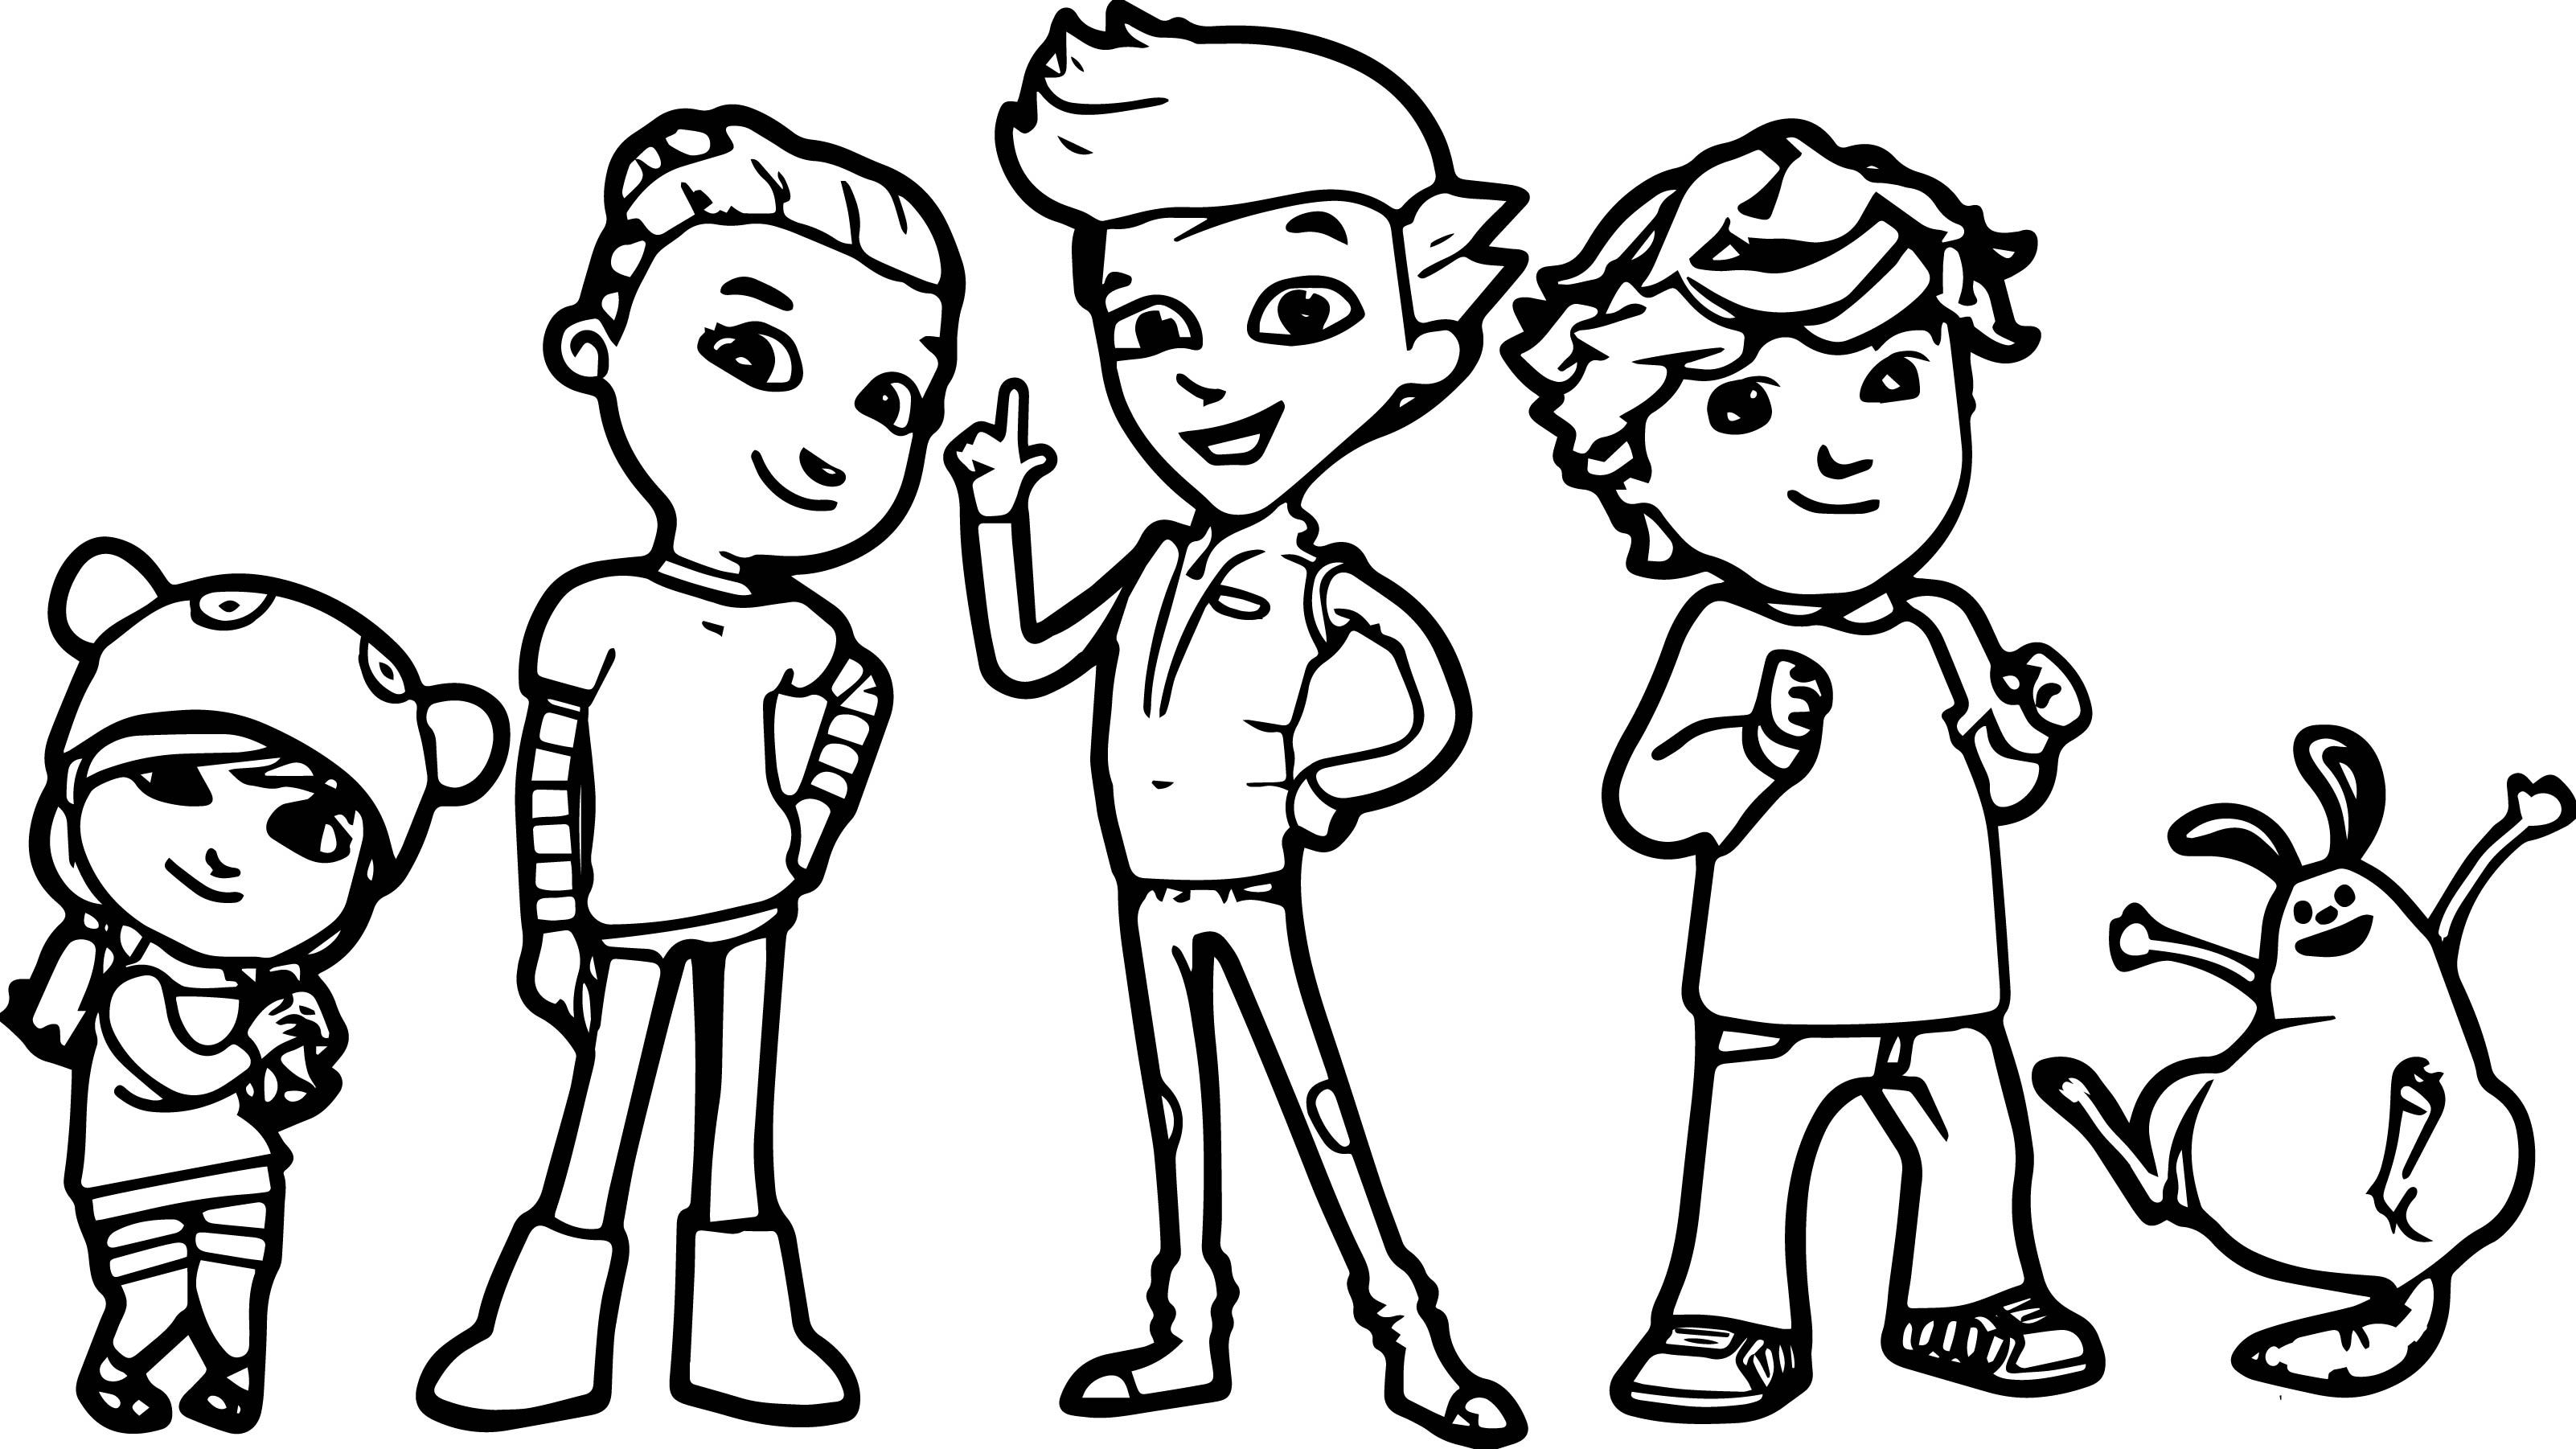 Pbs Kids Coloring Pages Printable